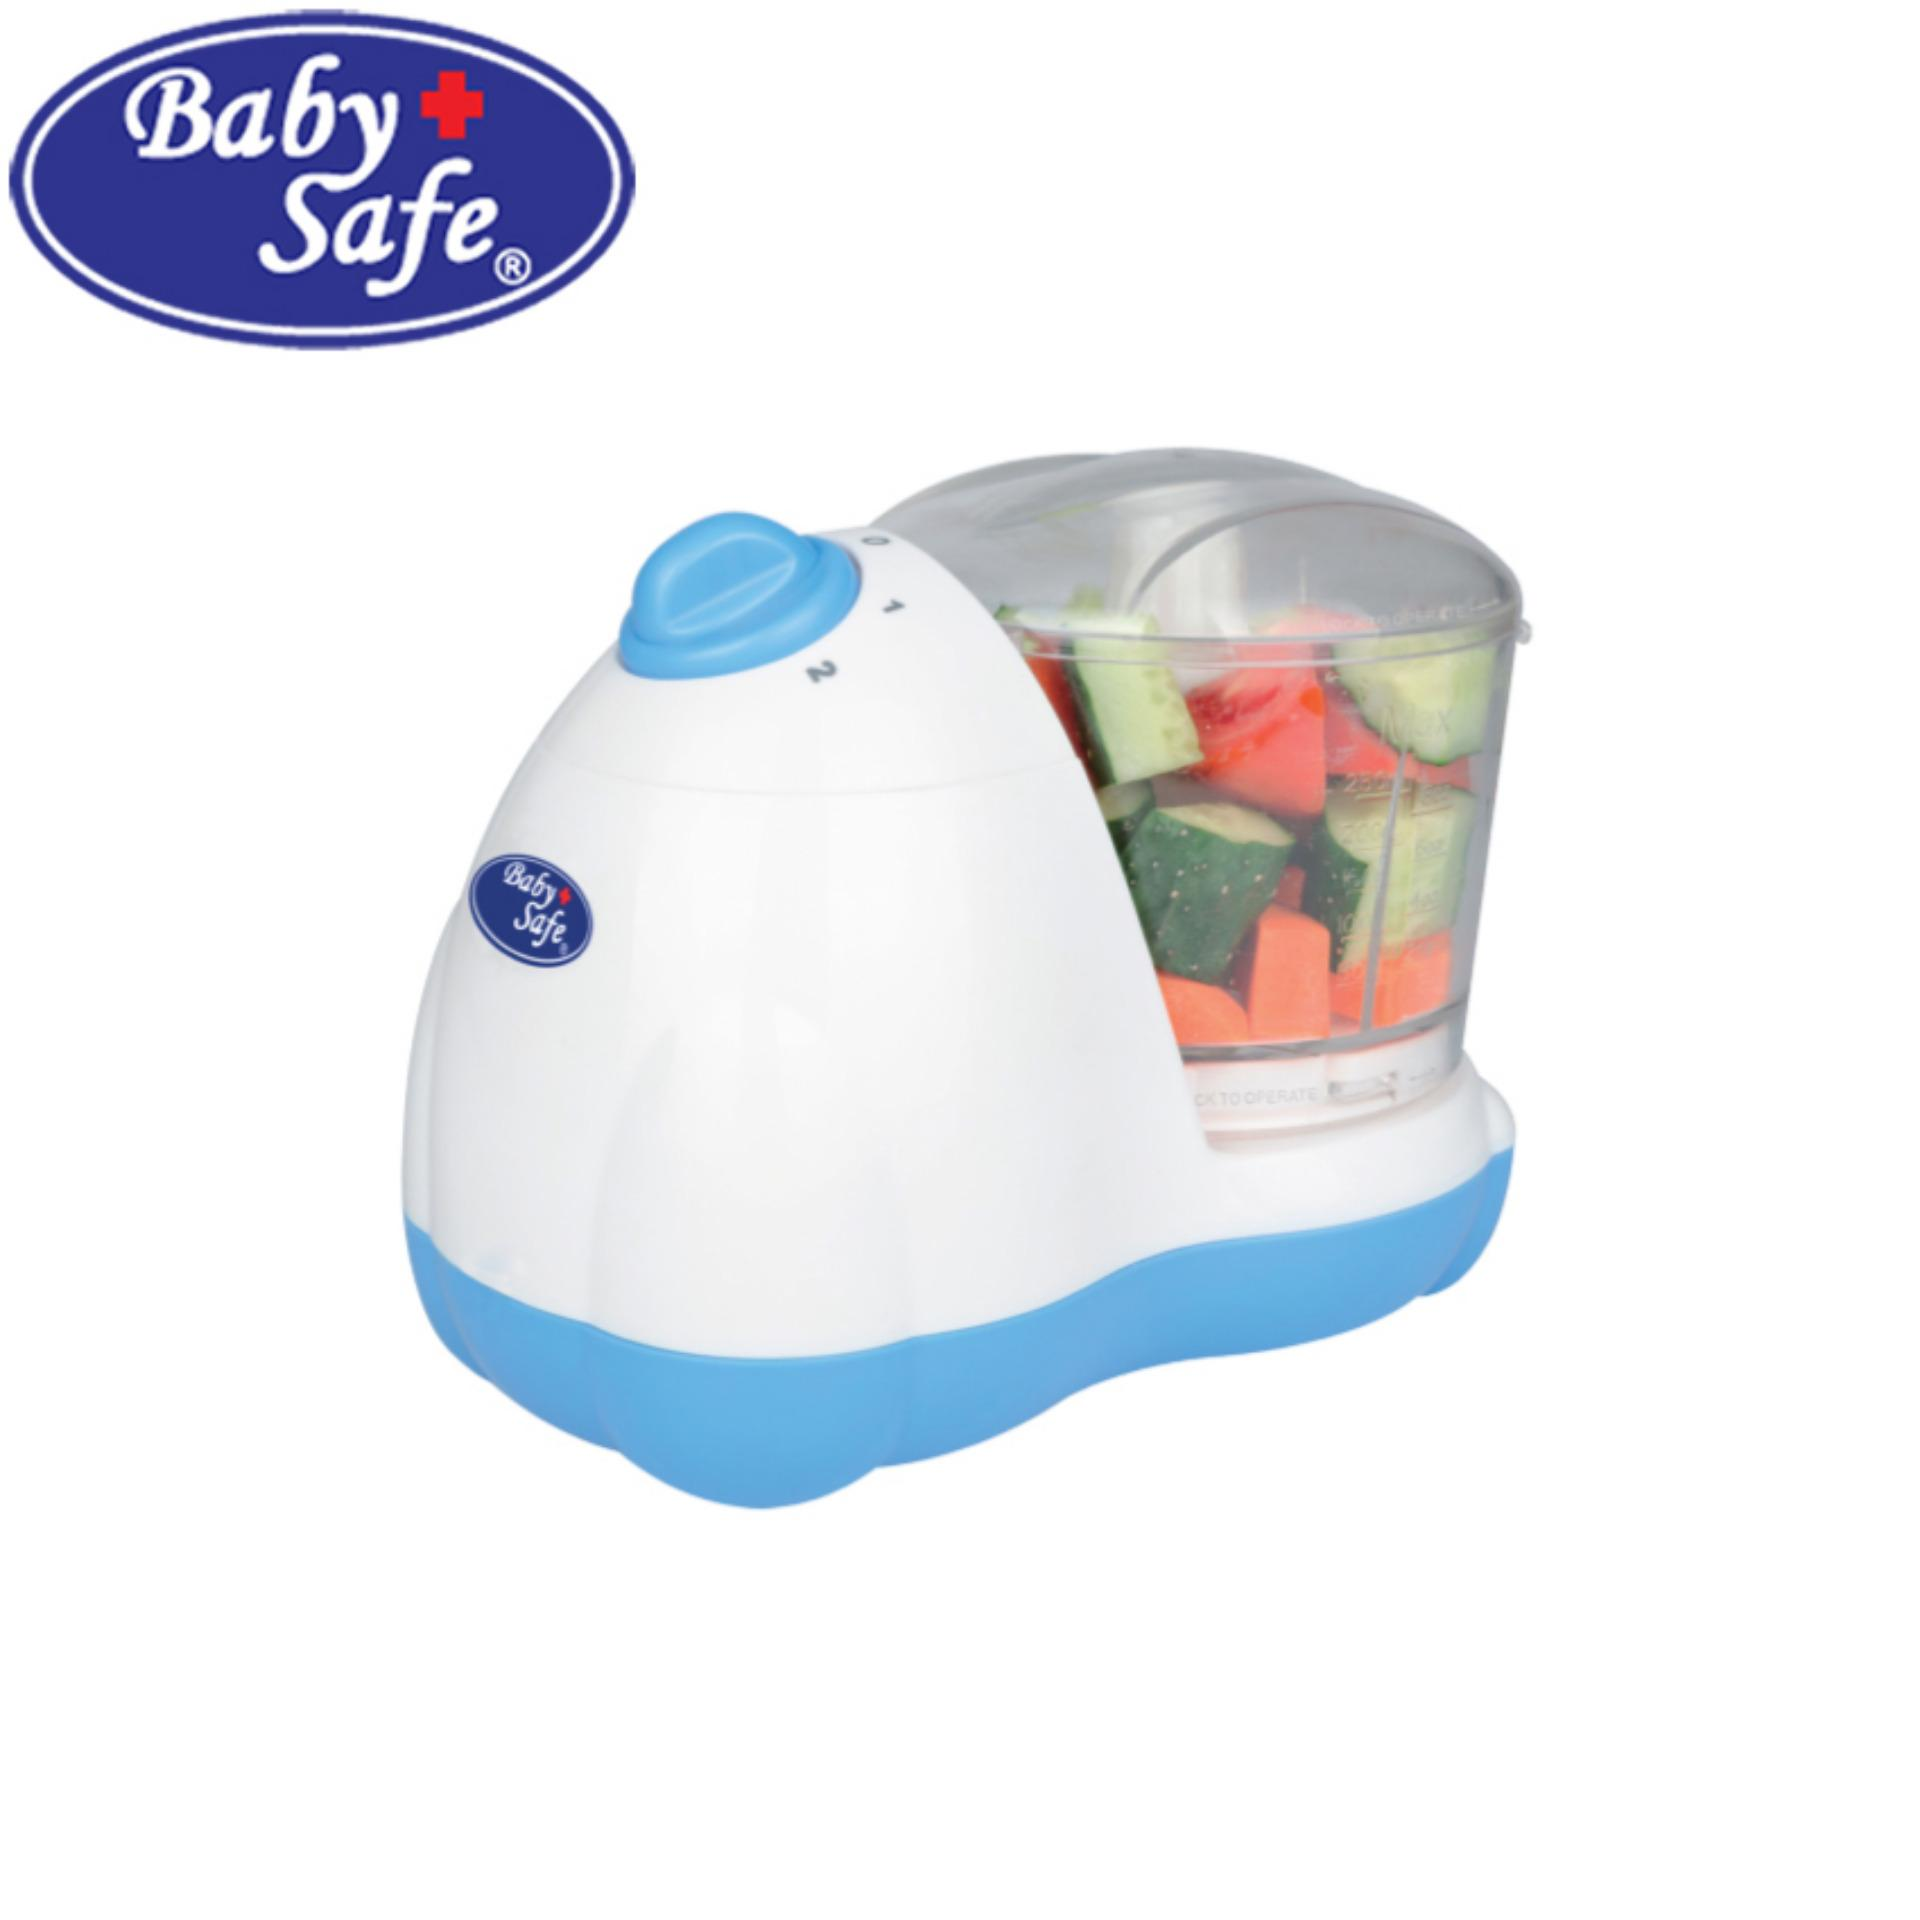 Beli Baby Safe Lb 609 Smart Baby Food Processor Murah